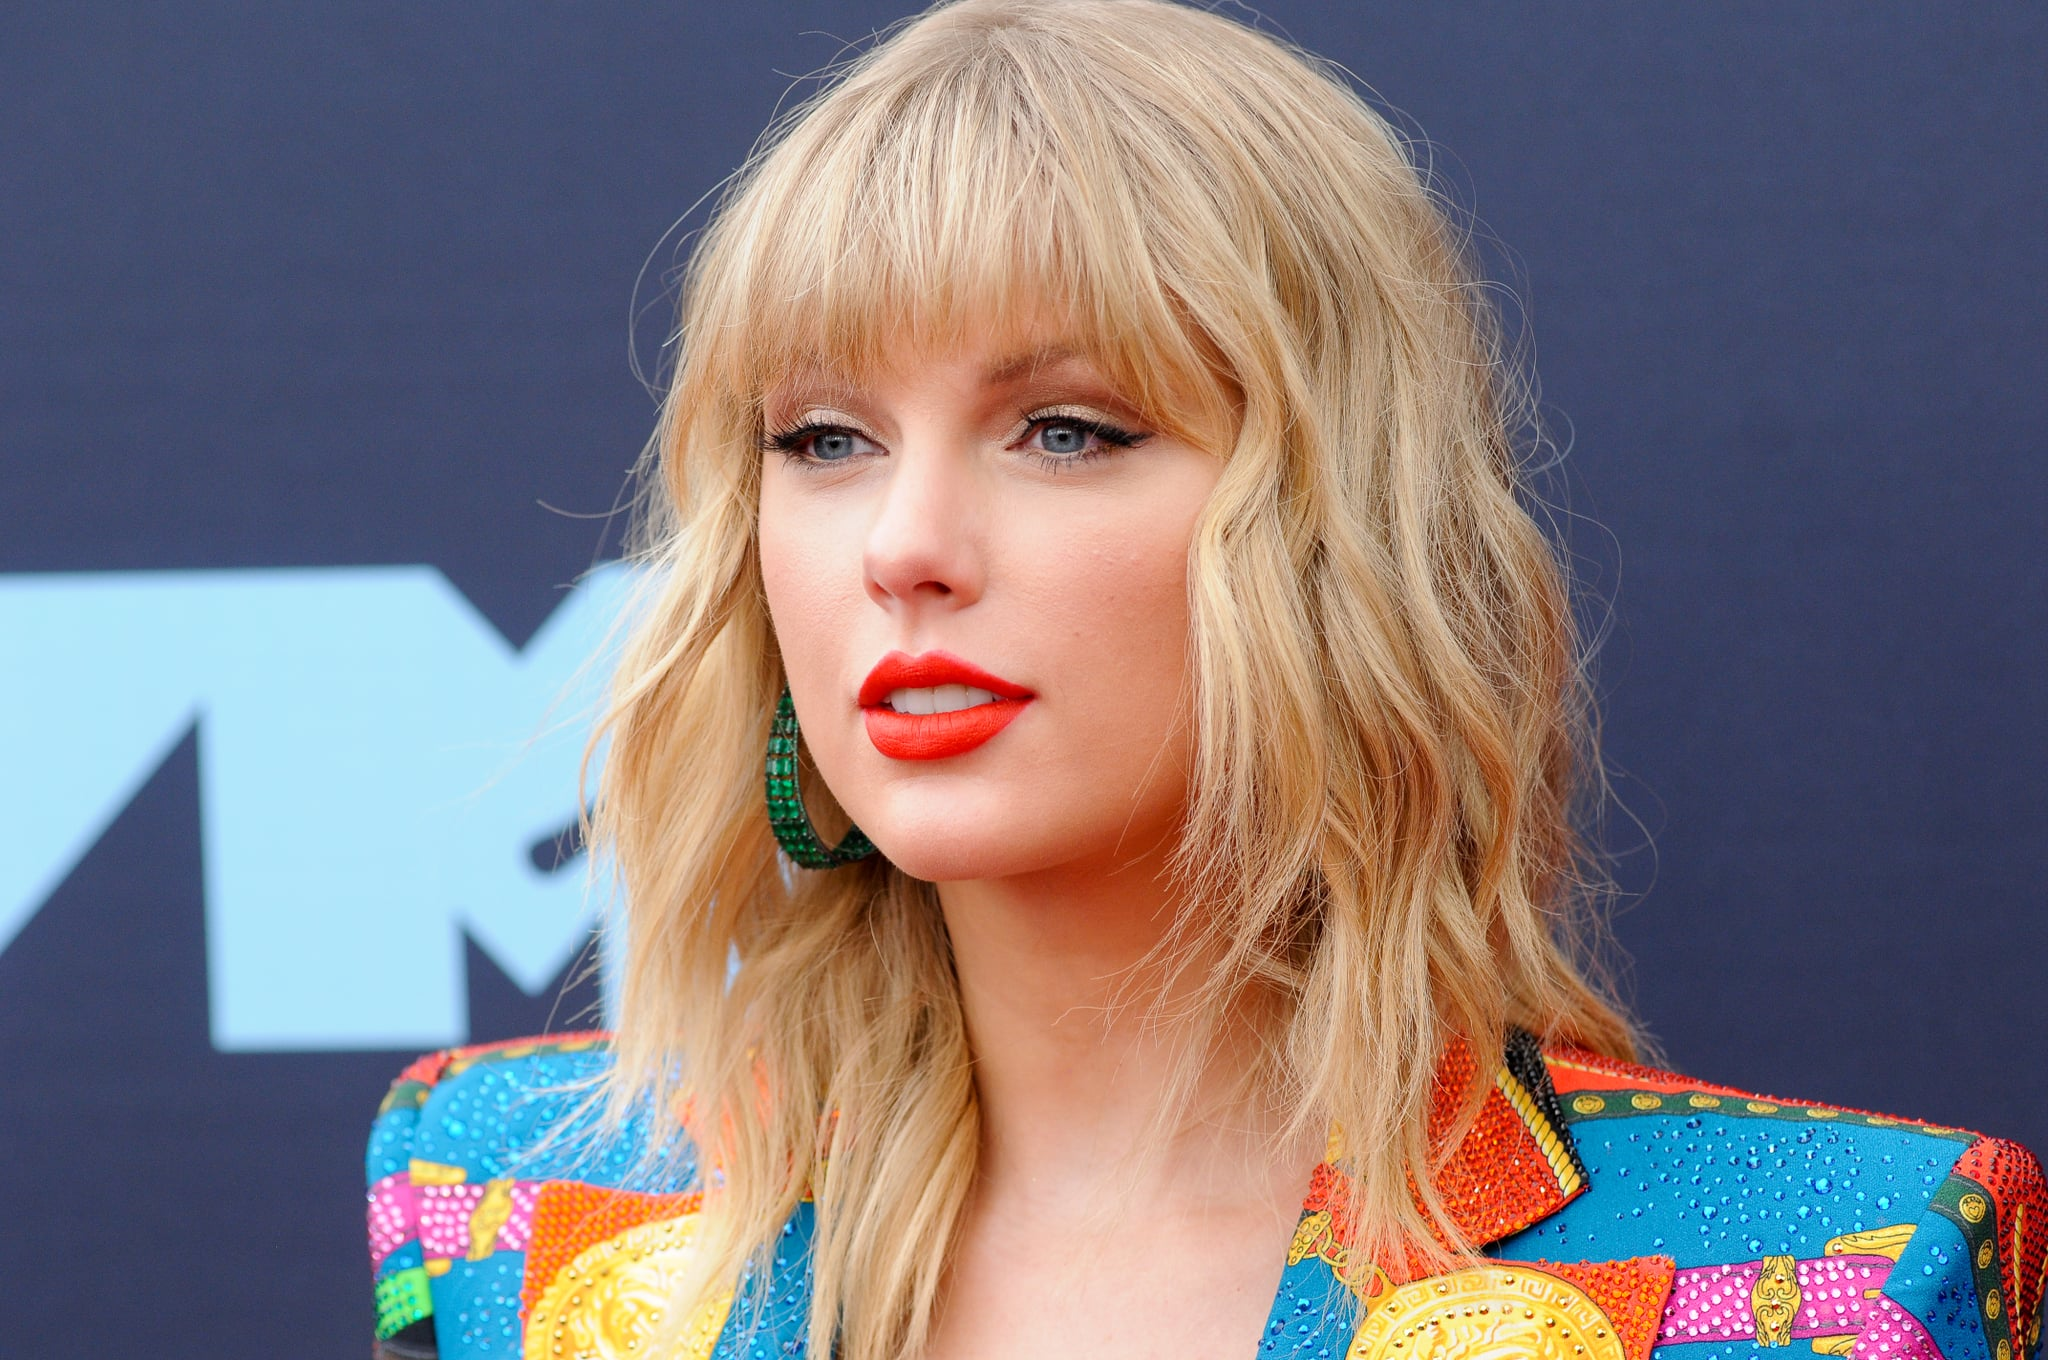 PRUDENTIAL CENTER, NEWARK, NEW JERSEY, UNITED STATES - 2019/08/26: Taylor Swift attends the 2019 MTV Video Music Video Awards held at the Prudential Center in Newark, NJ. (Photo by Efren Landaos/SOPA Images/LightRocket via Getty Images)